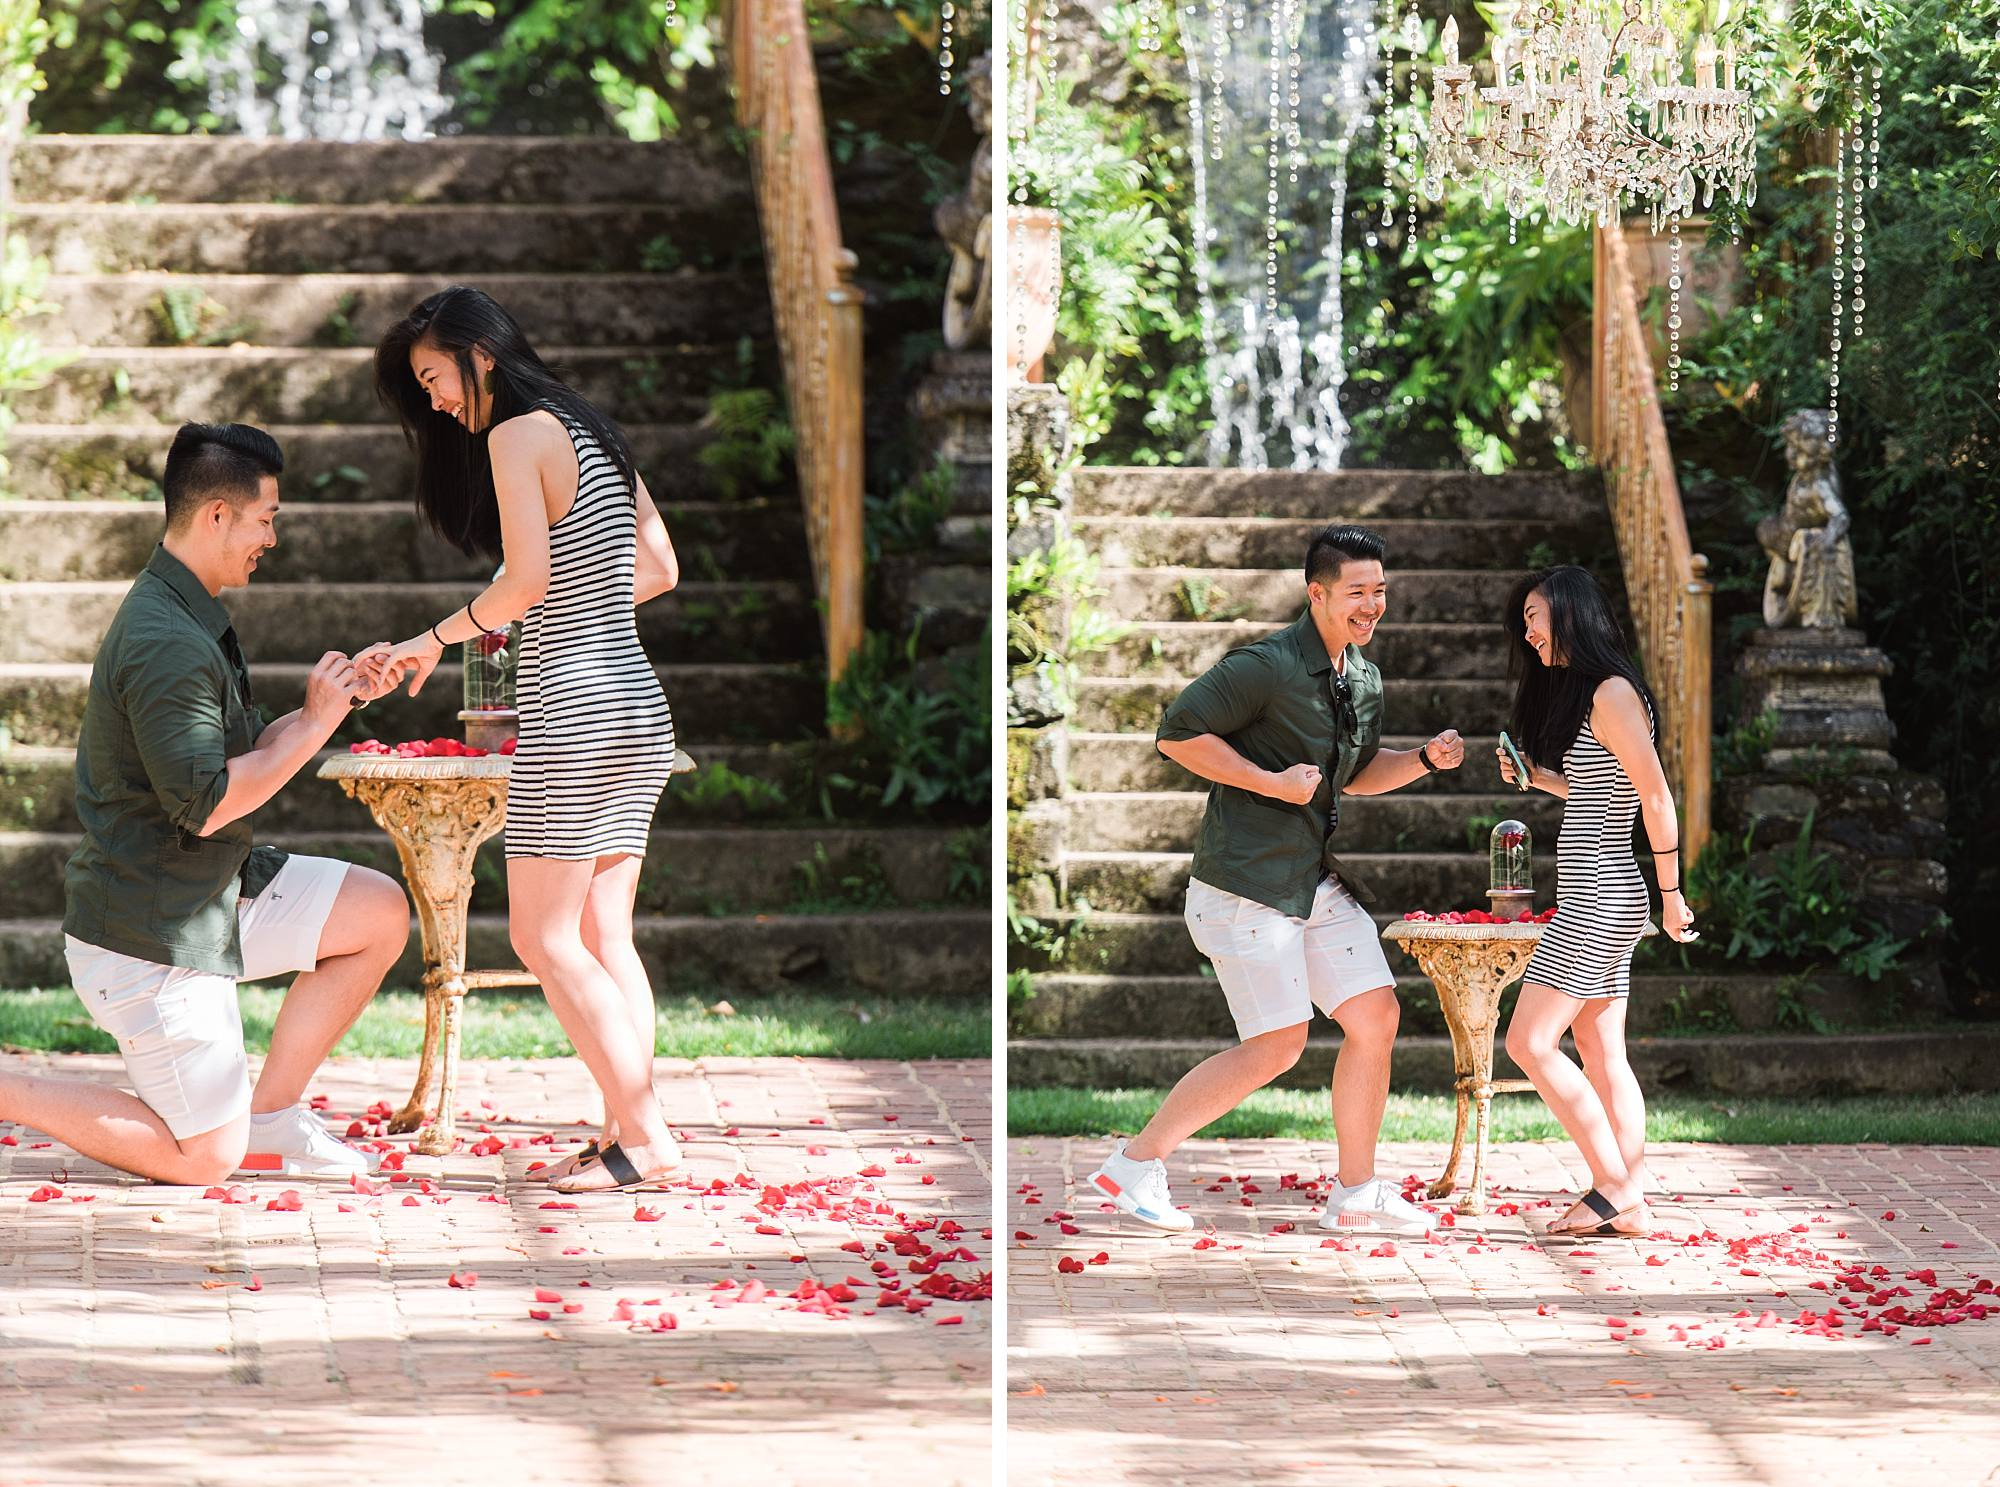 She said yes! He is putting a ring on her finger and doing a happy dance.